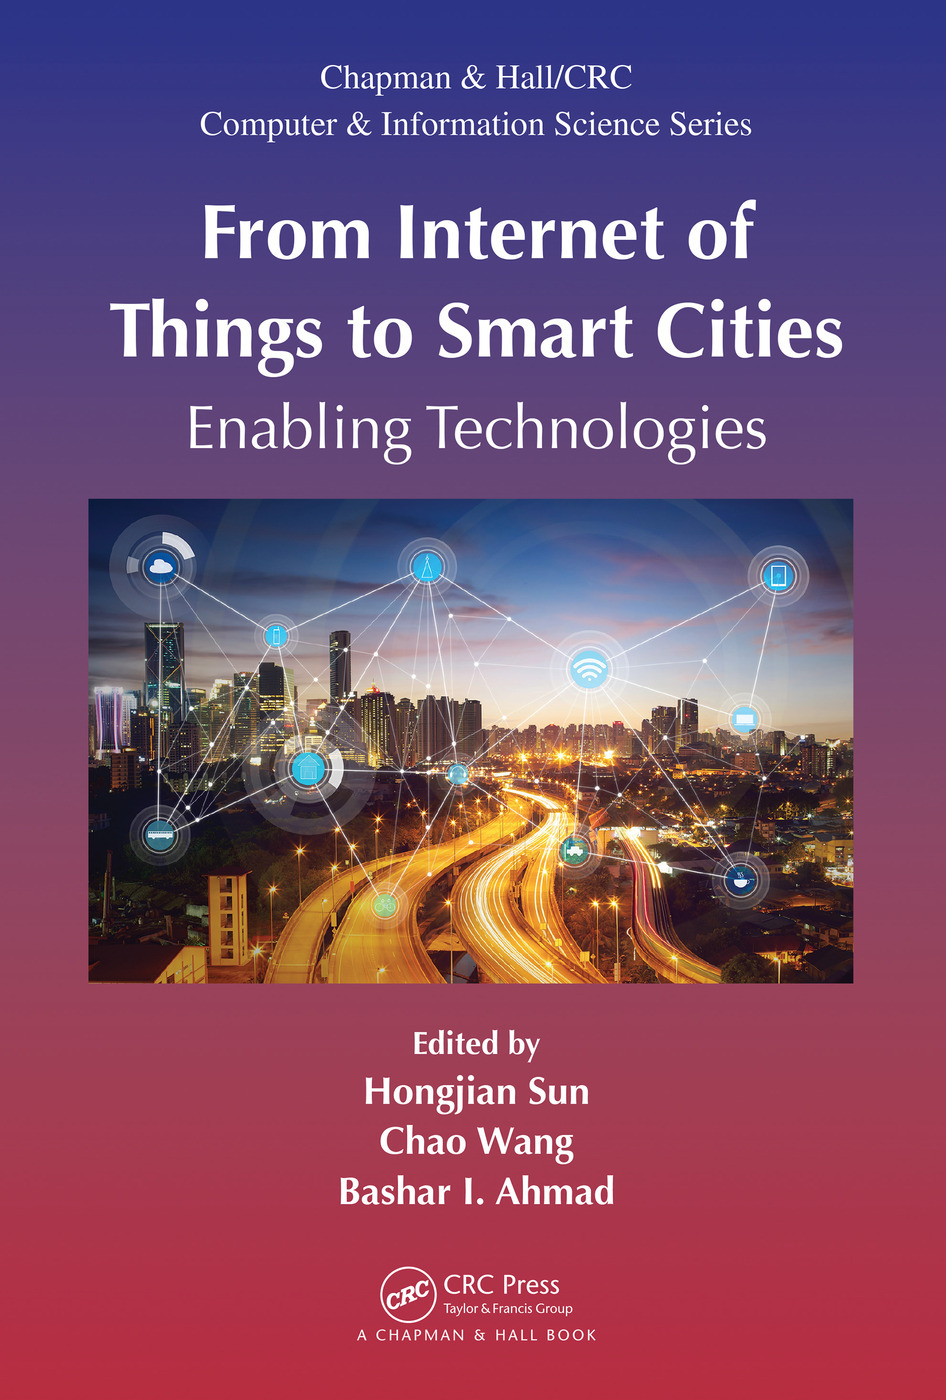 From Internet of Things to Smart Cities